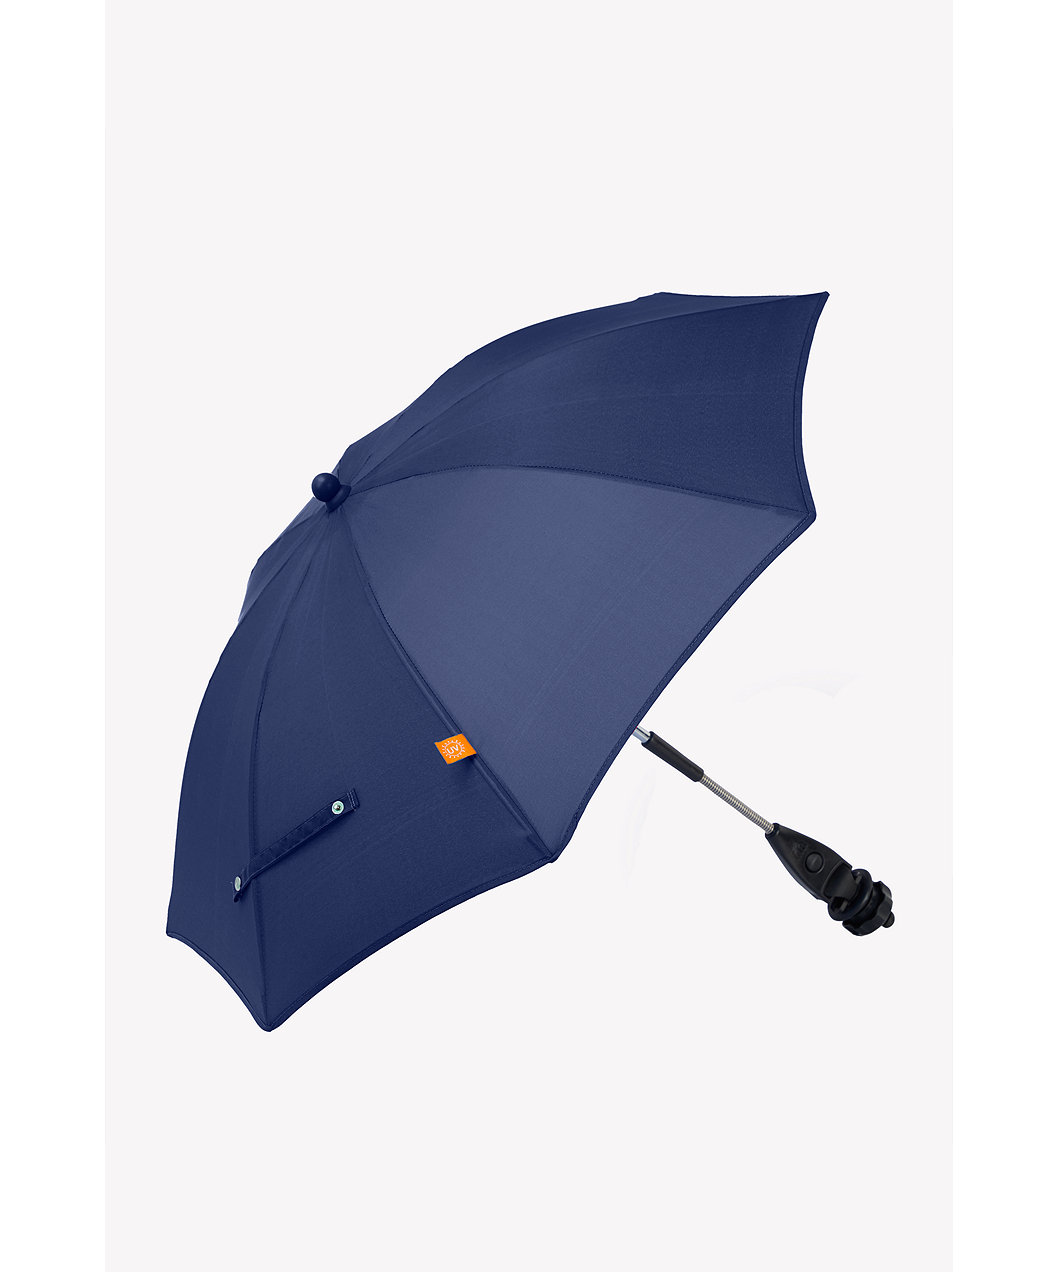 Mothercare UV Parasol Navy Blue